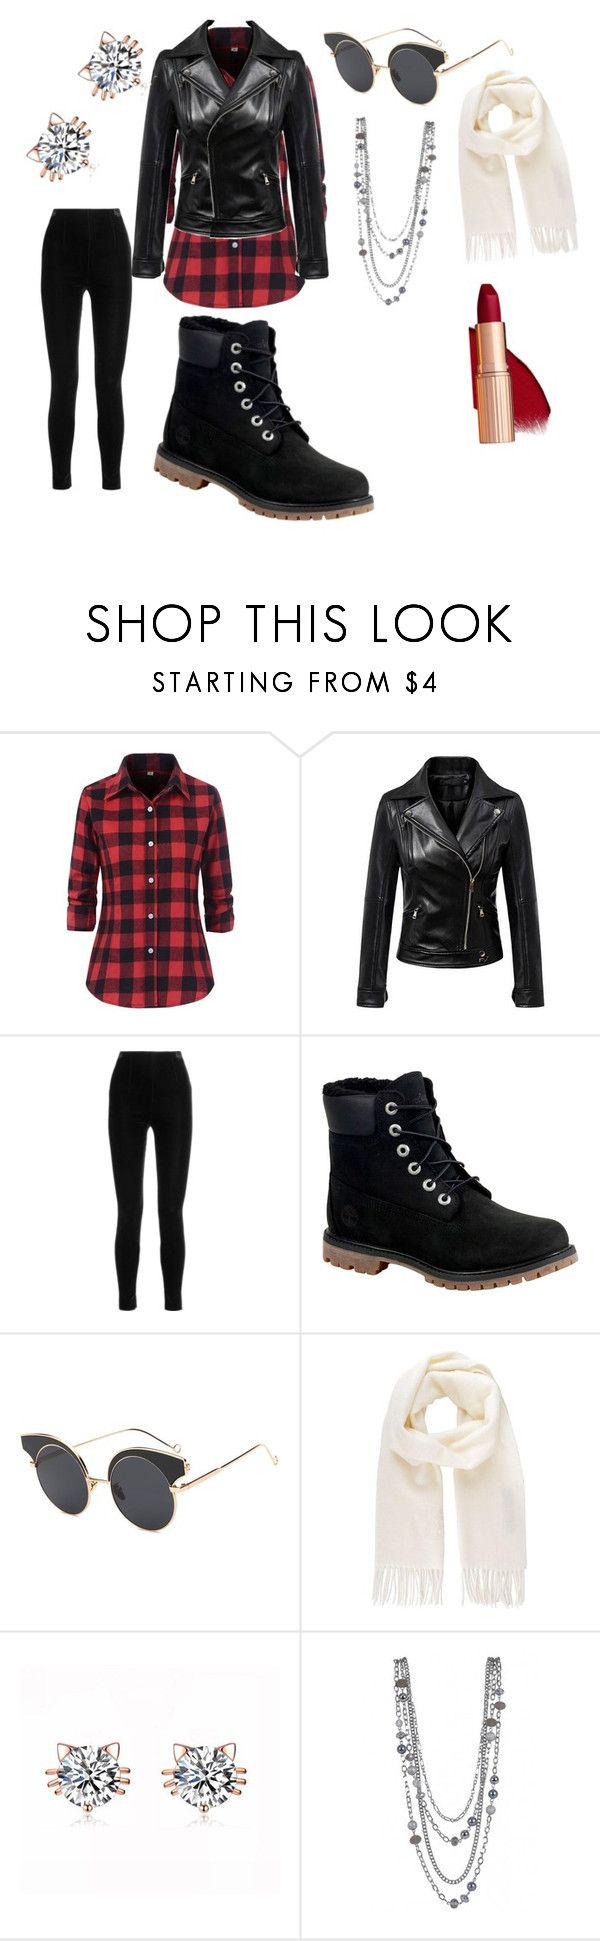 """""""First day of winter"""" by melissa-kalay ❤ liked on Polyvore featuring Chicnova Fashion, Balmain, Timberland and Vivienne Westwood"""